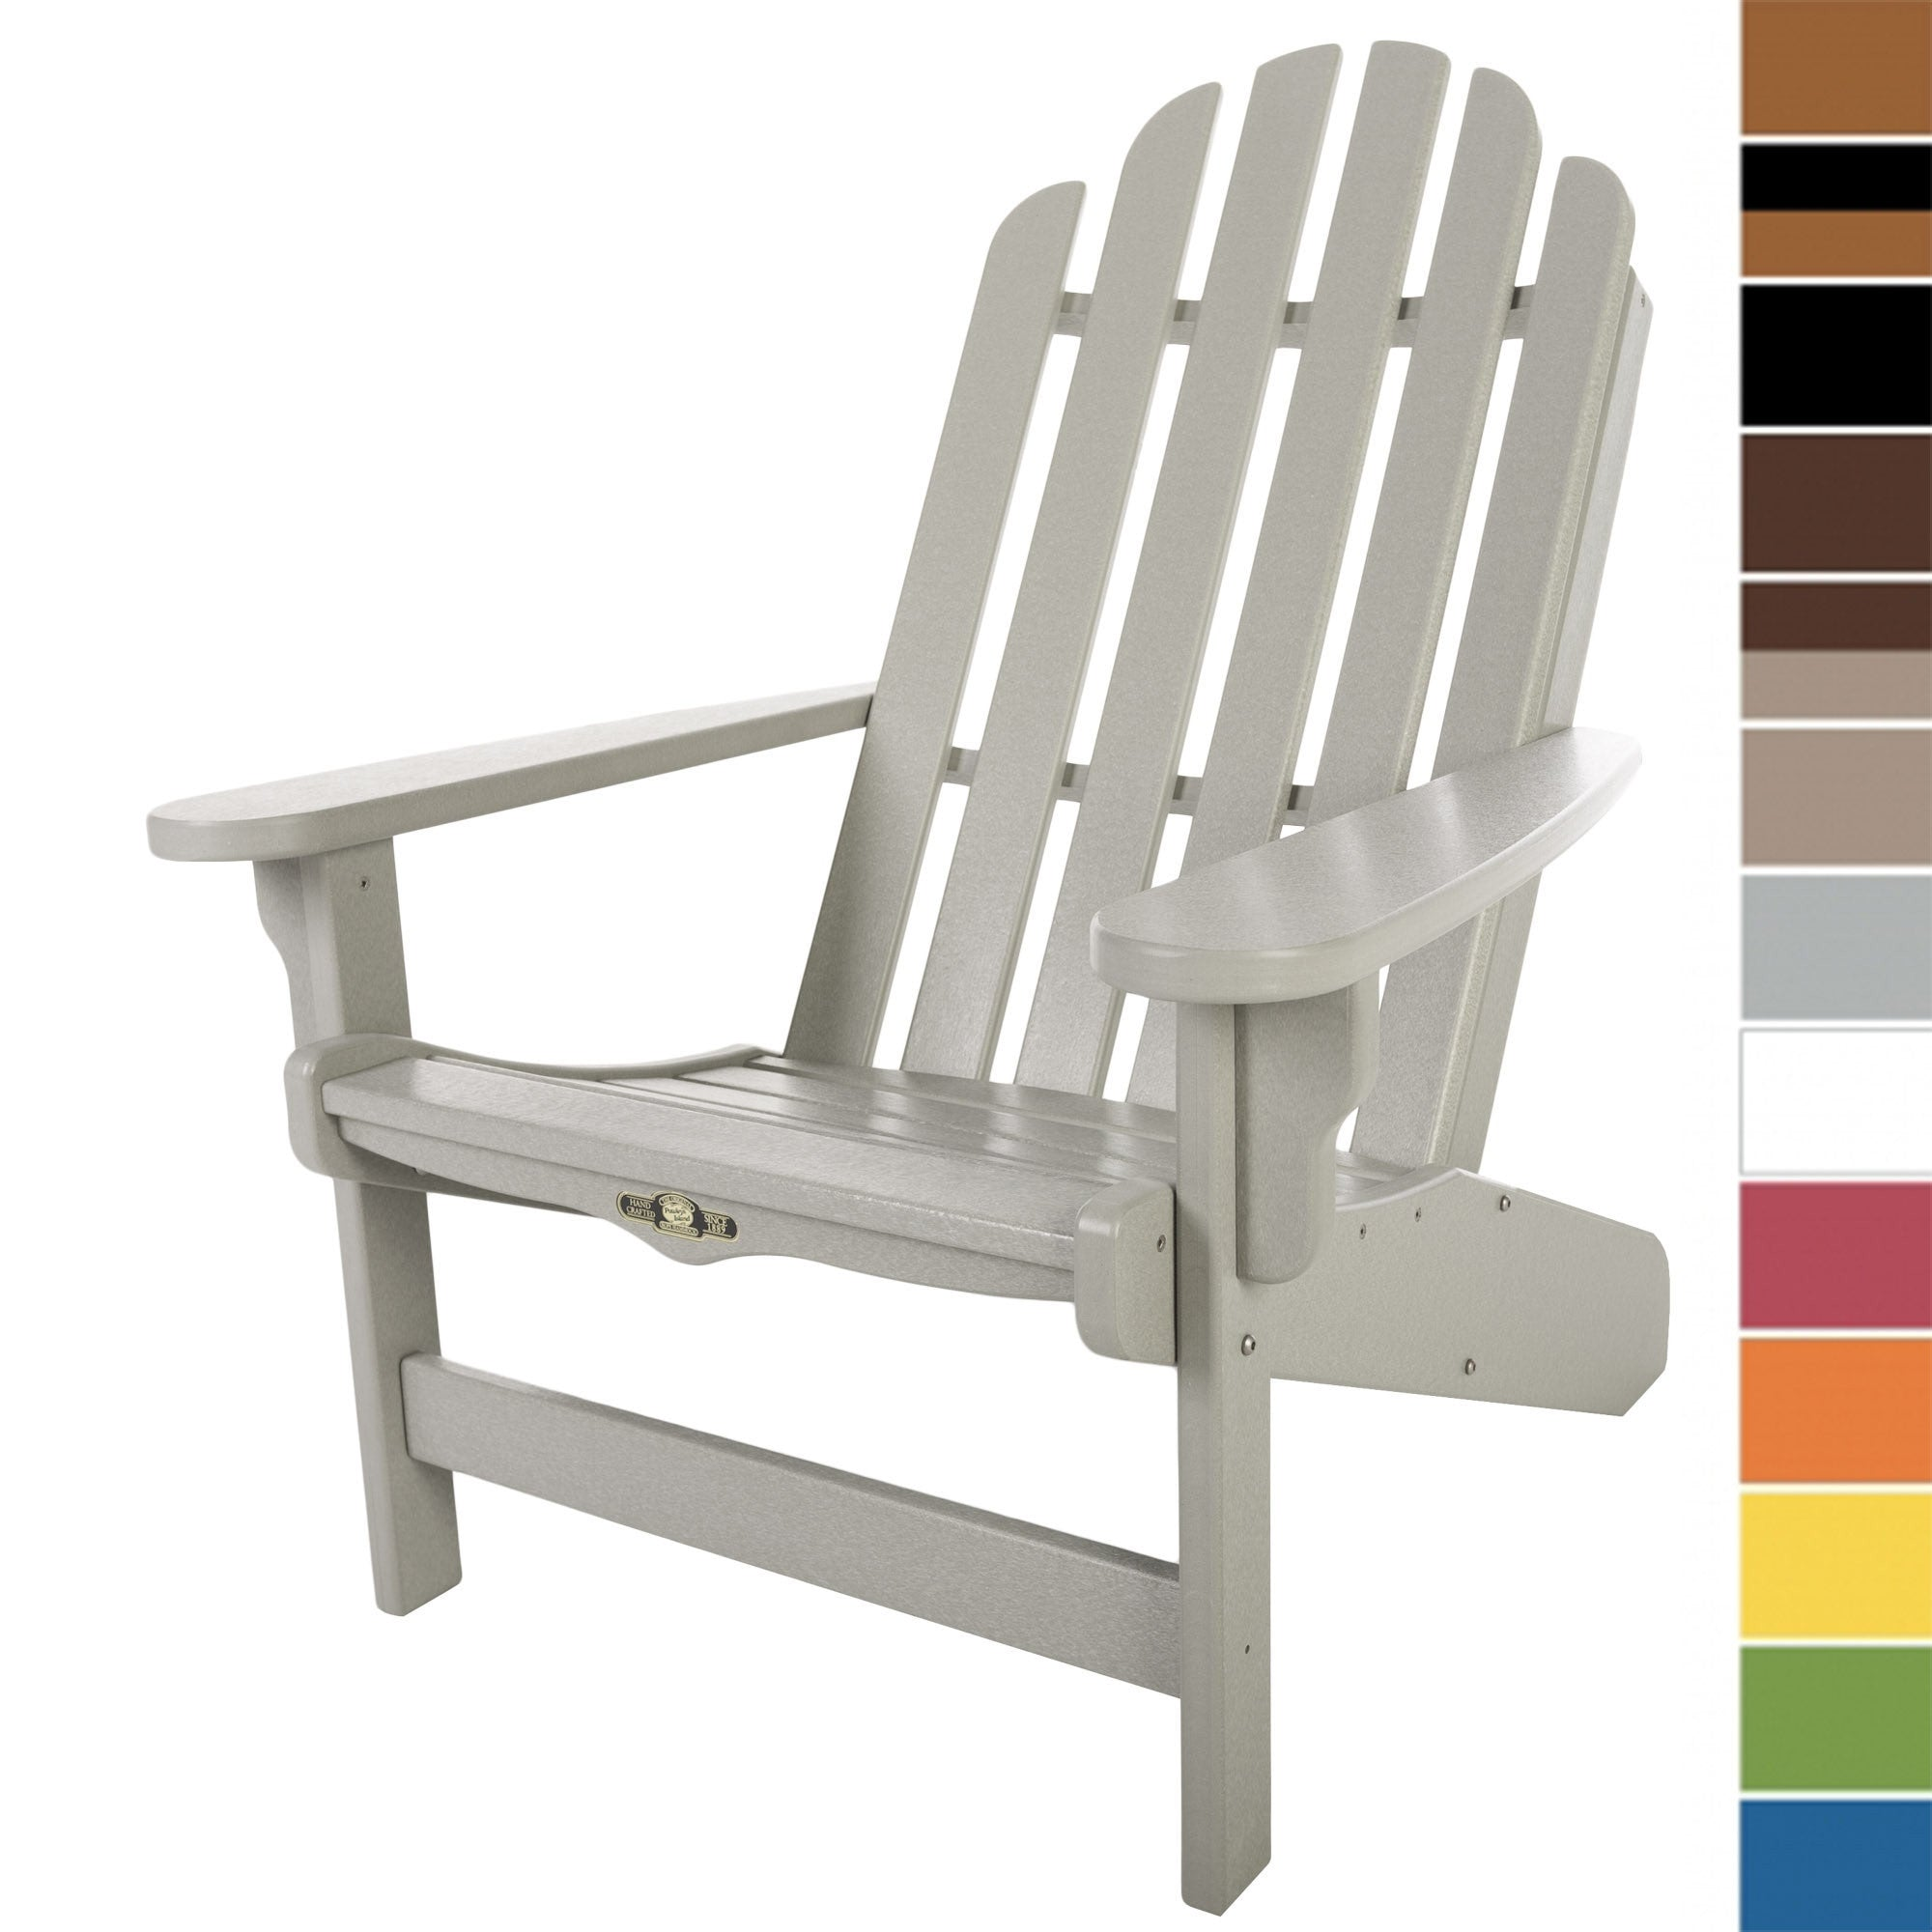 ... Durawood Essential Adirondack Chair - Pawleys Island ...  sc 1 st  Home u0026 Patio Living & Durawood Essential Adirondack Chair - Pawleys Island - Home u0026 Patio ...